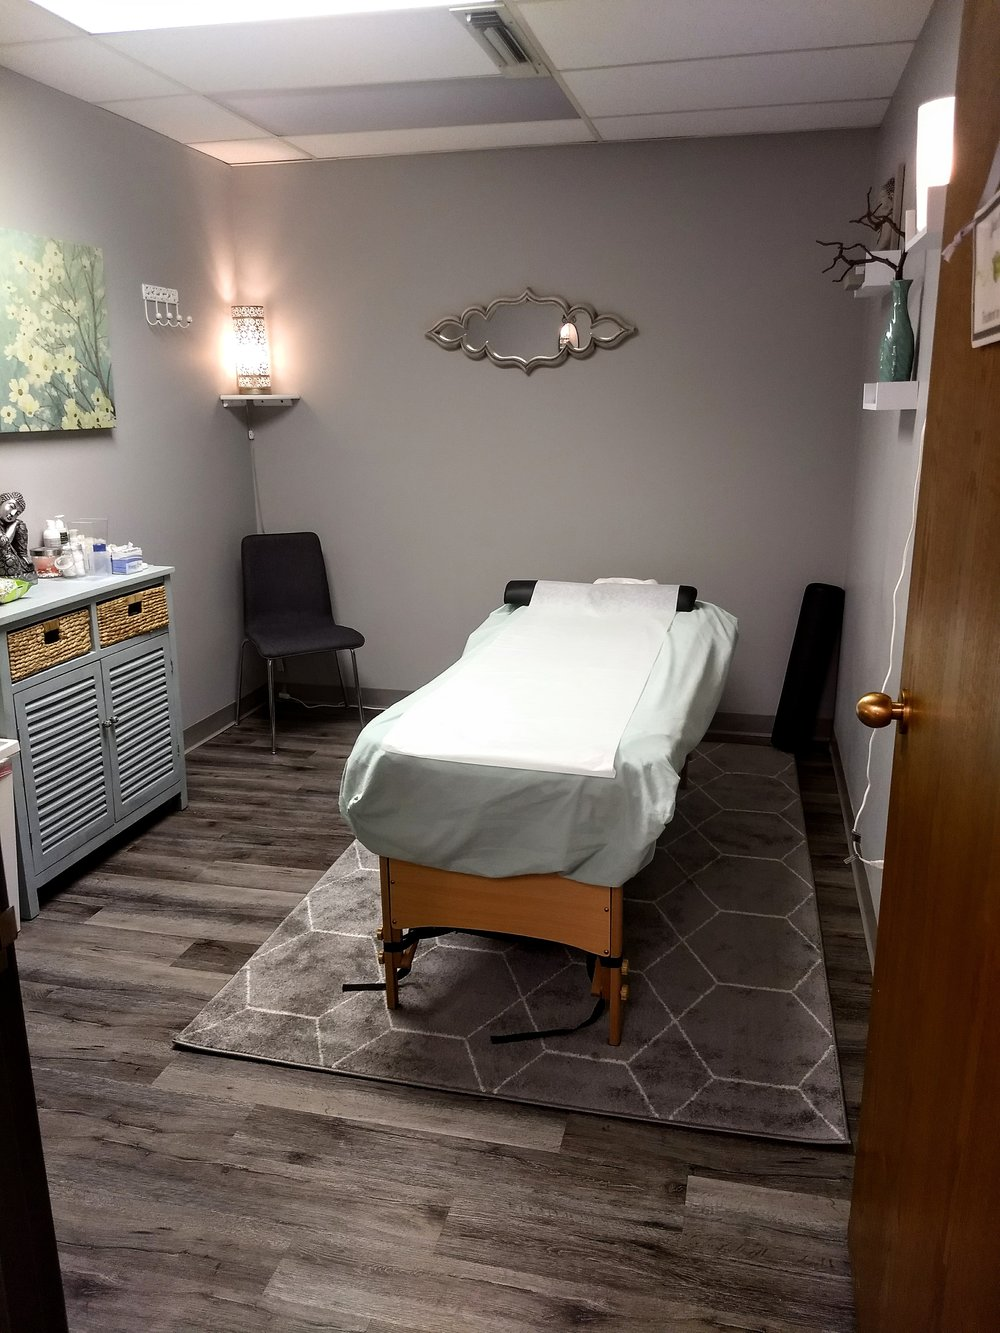 acupuncture wellness & fertility clinic 1.jpg